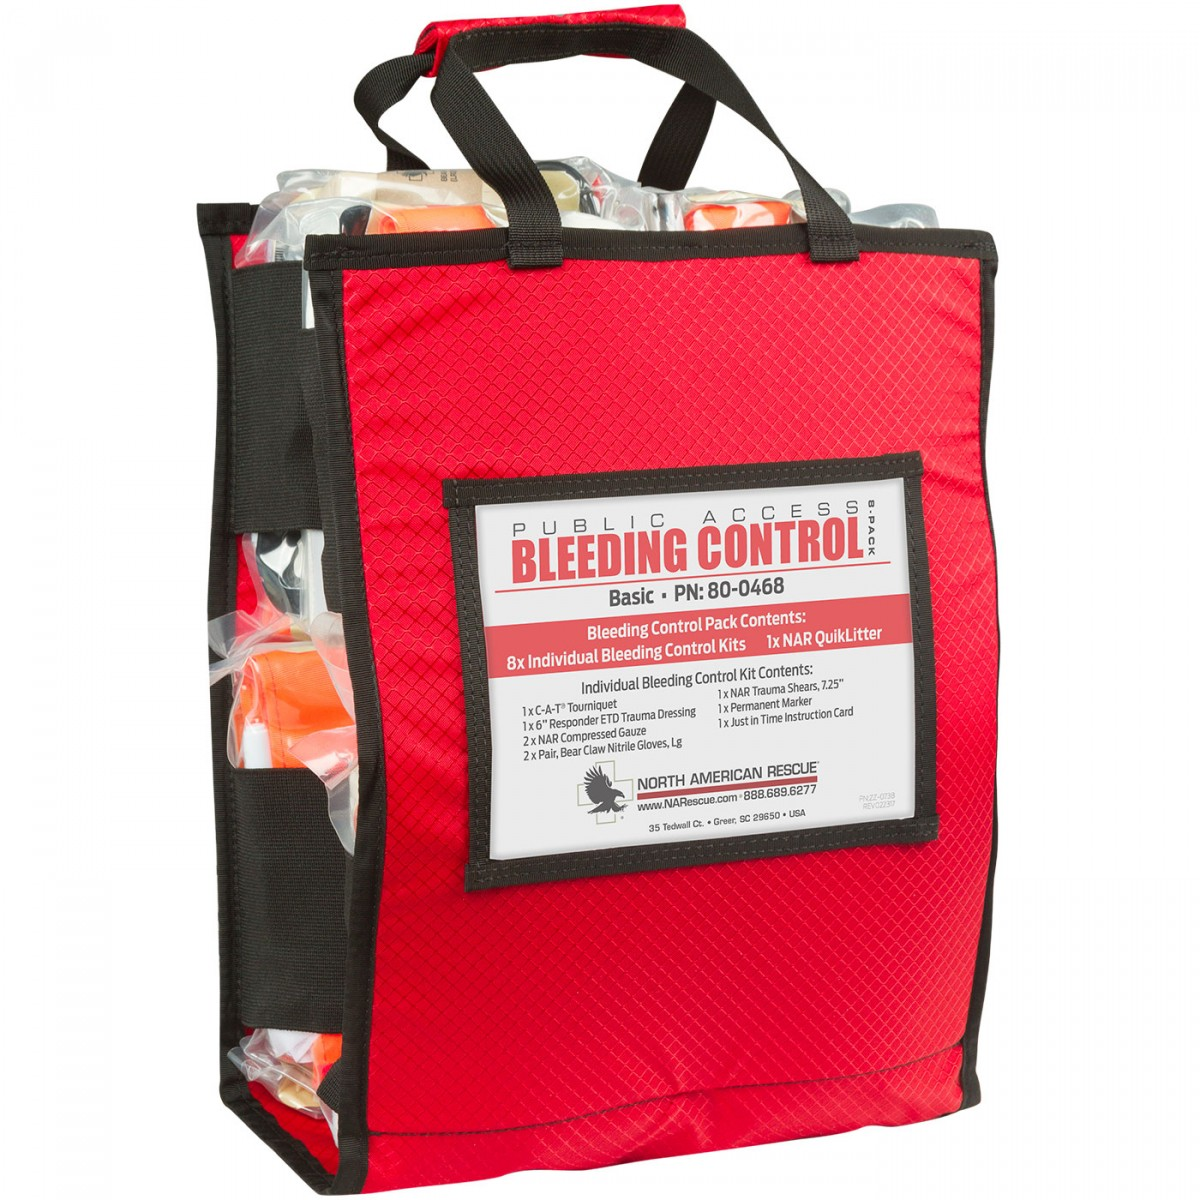 Bleeding Control Kit | Education for Life | Boston, MA